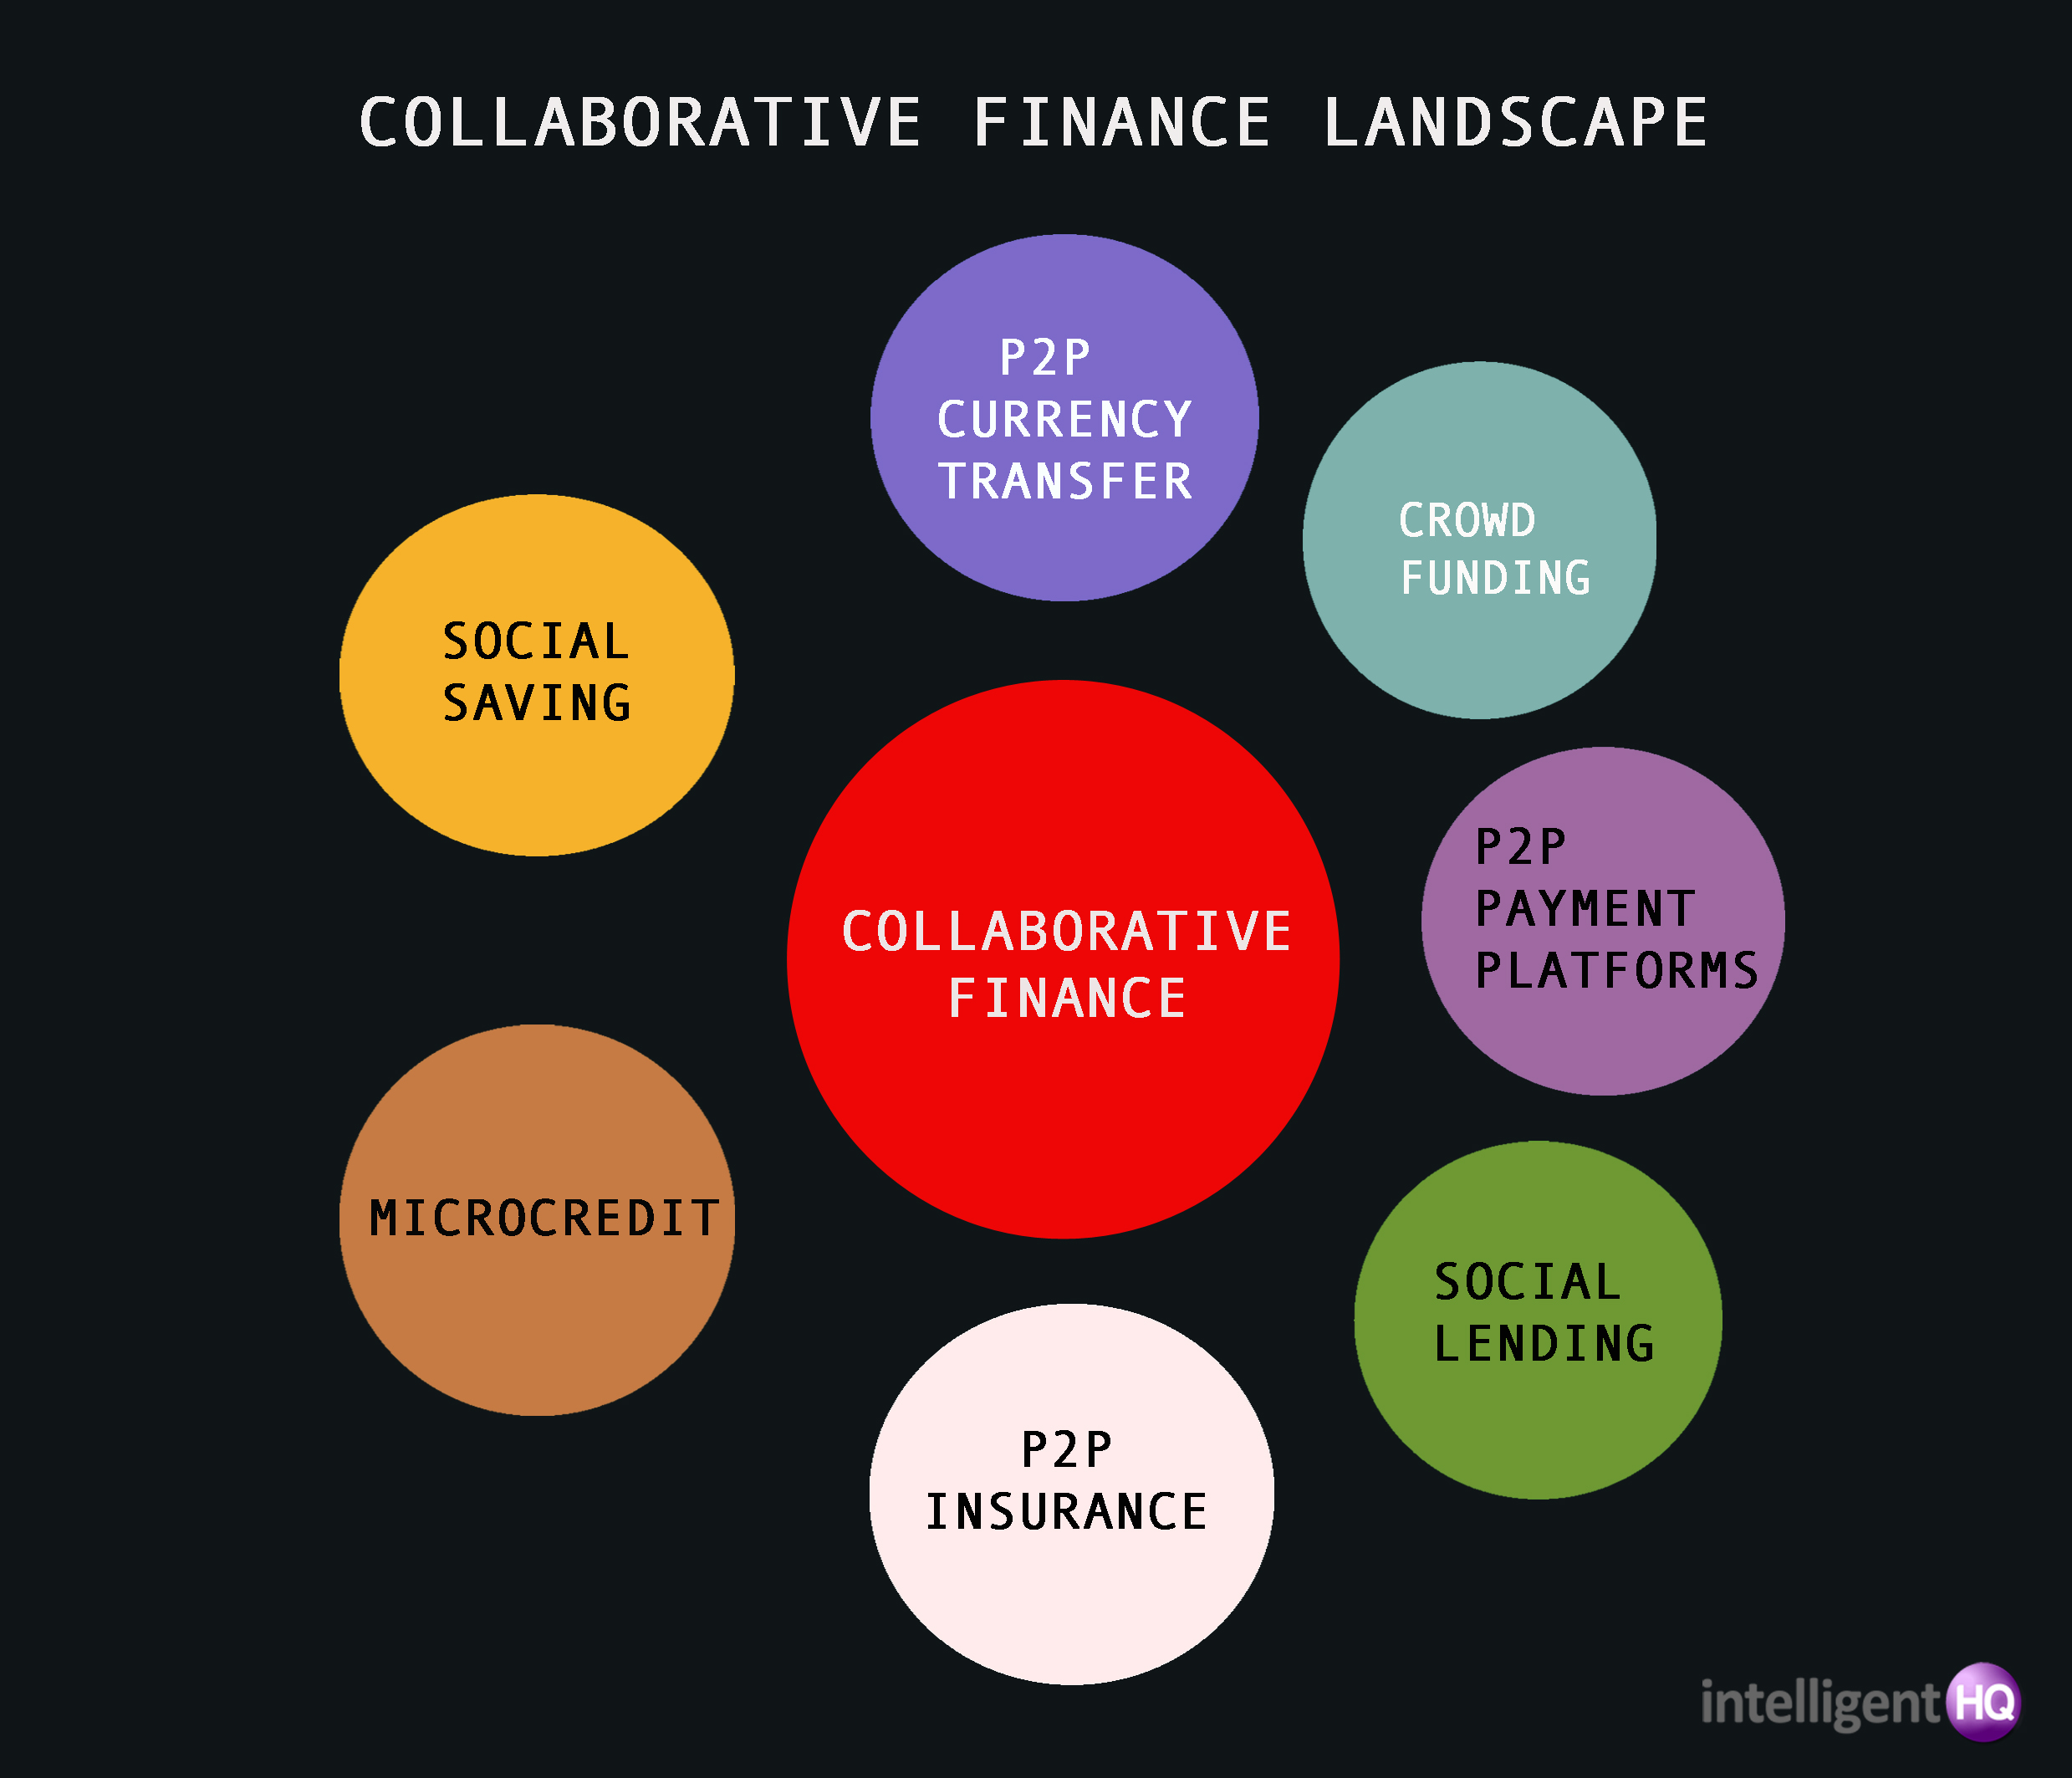 collaborative finance Intelligenthq